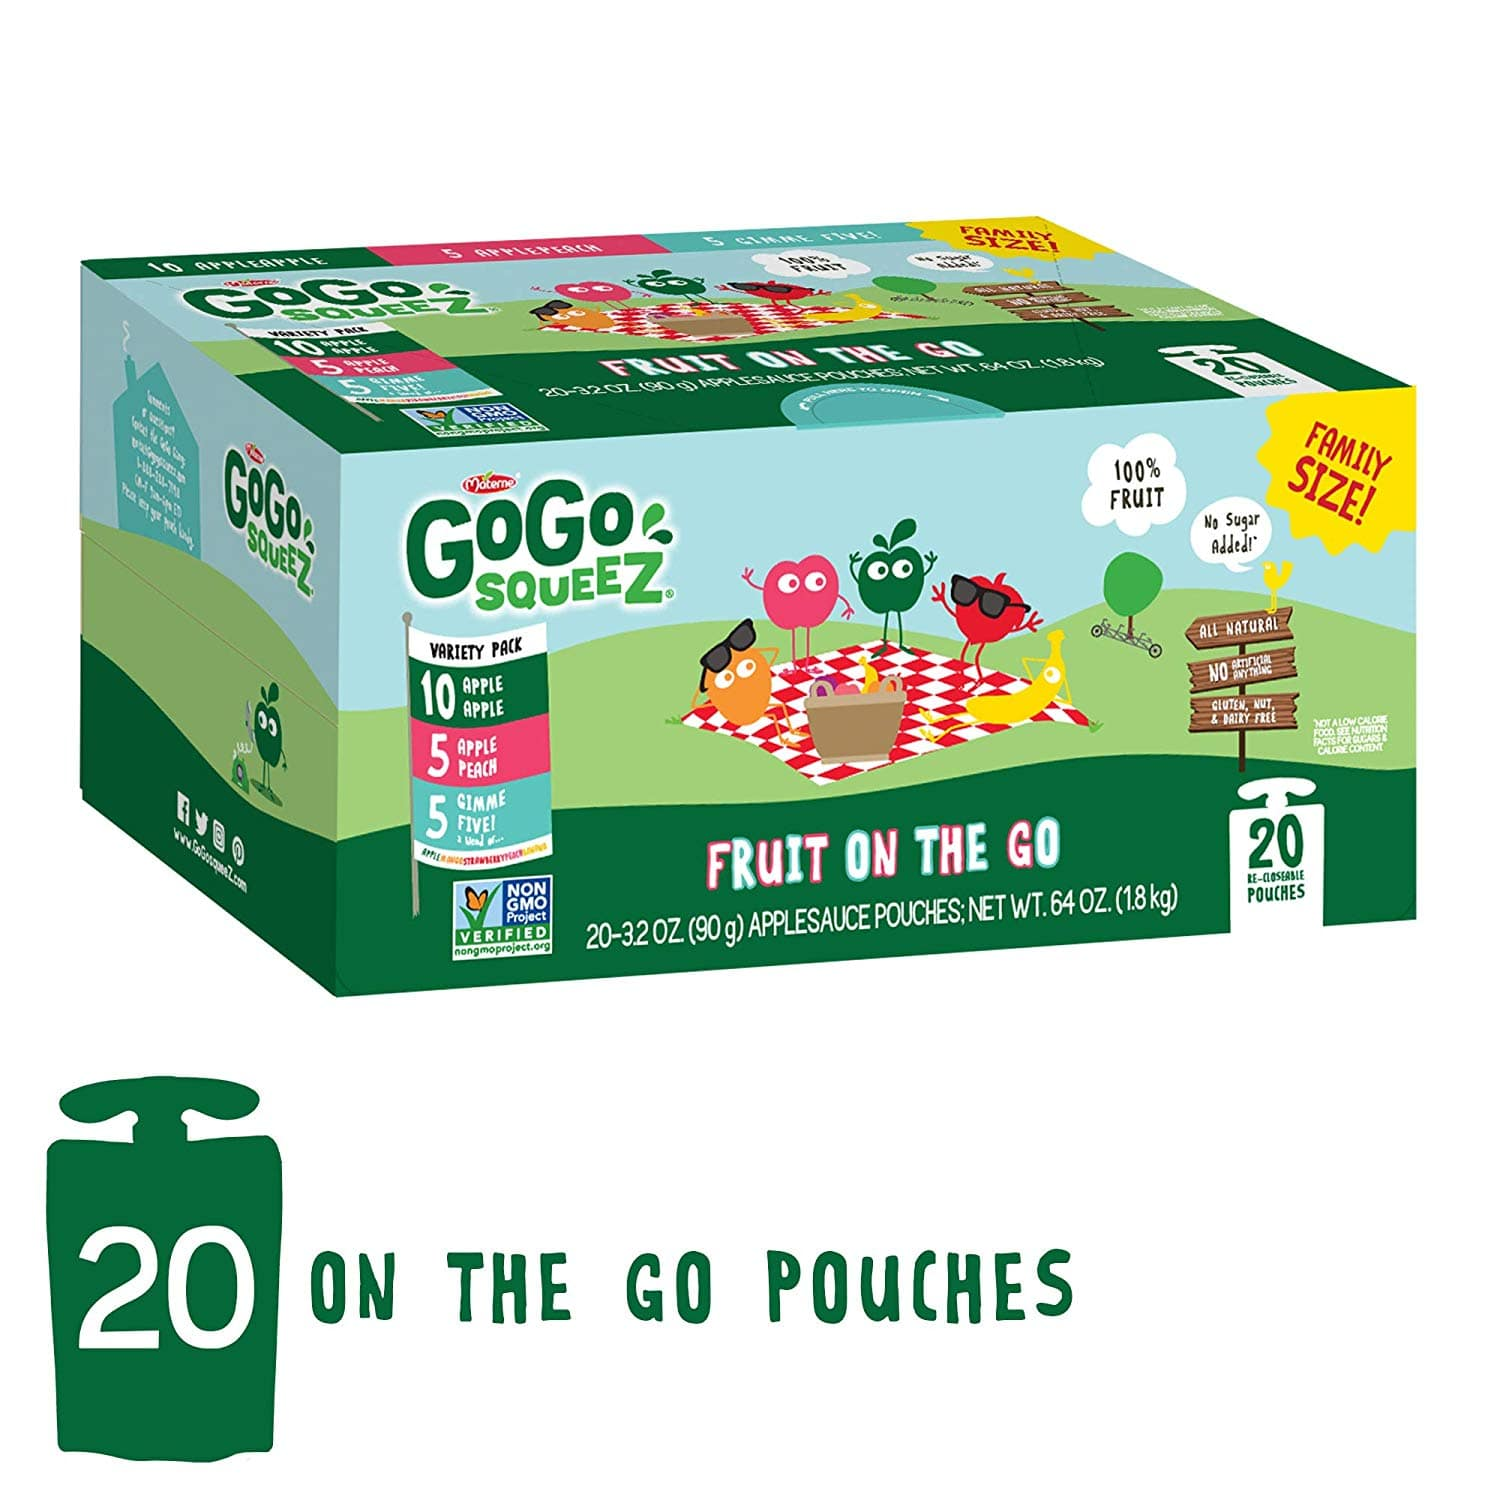 20-Pack 3.2 oz.GoGo squeeZ Applesauce on the Go, Variety Pack Pouches for $8.48 A/C and S&S via Amazon